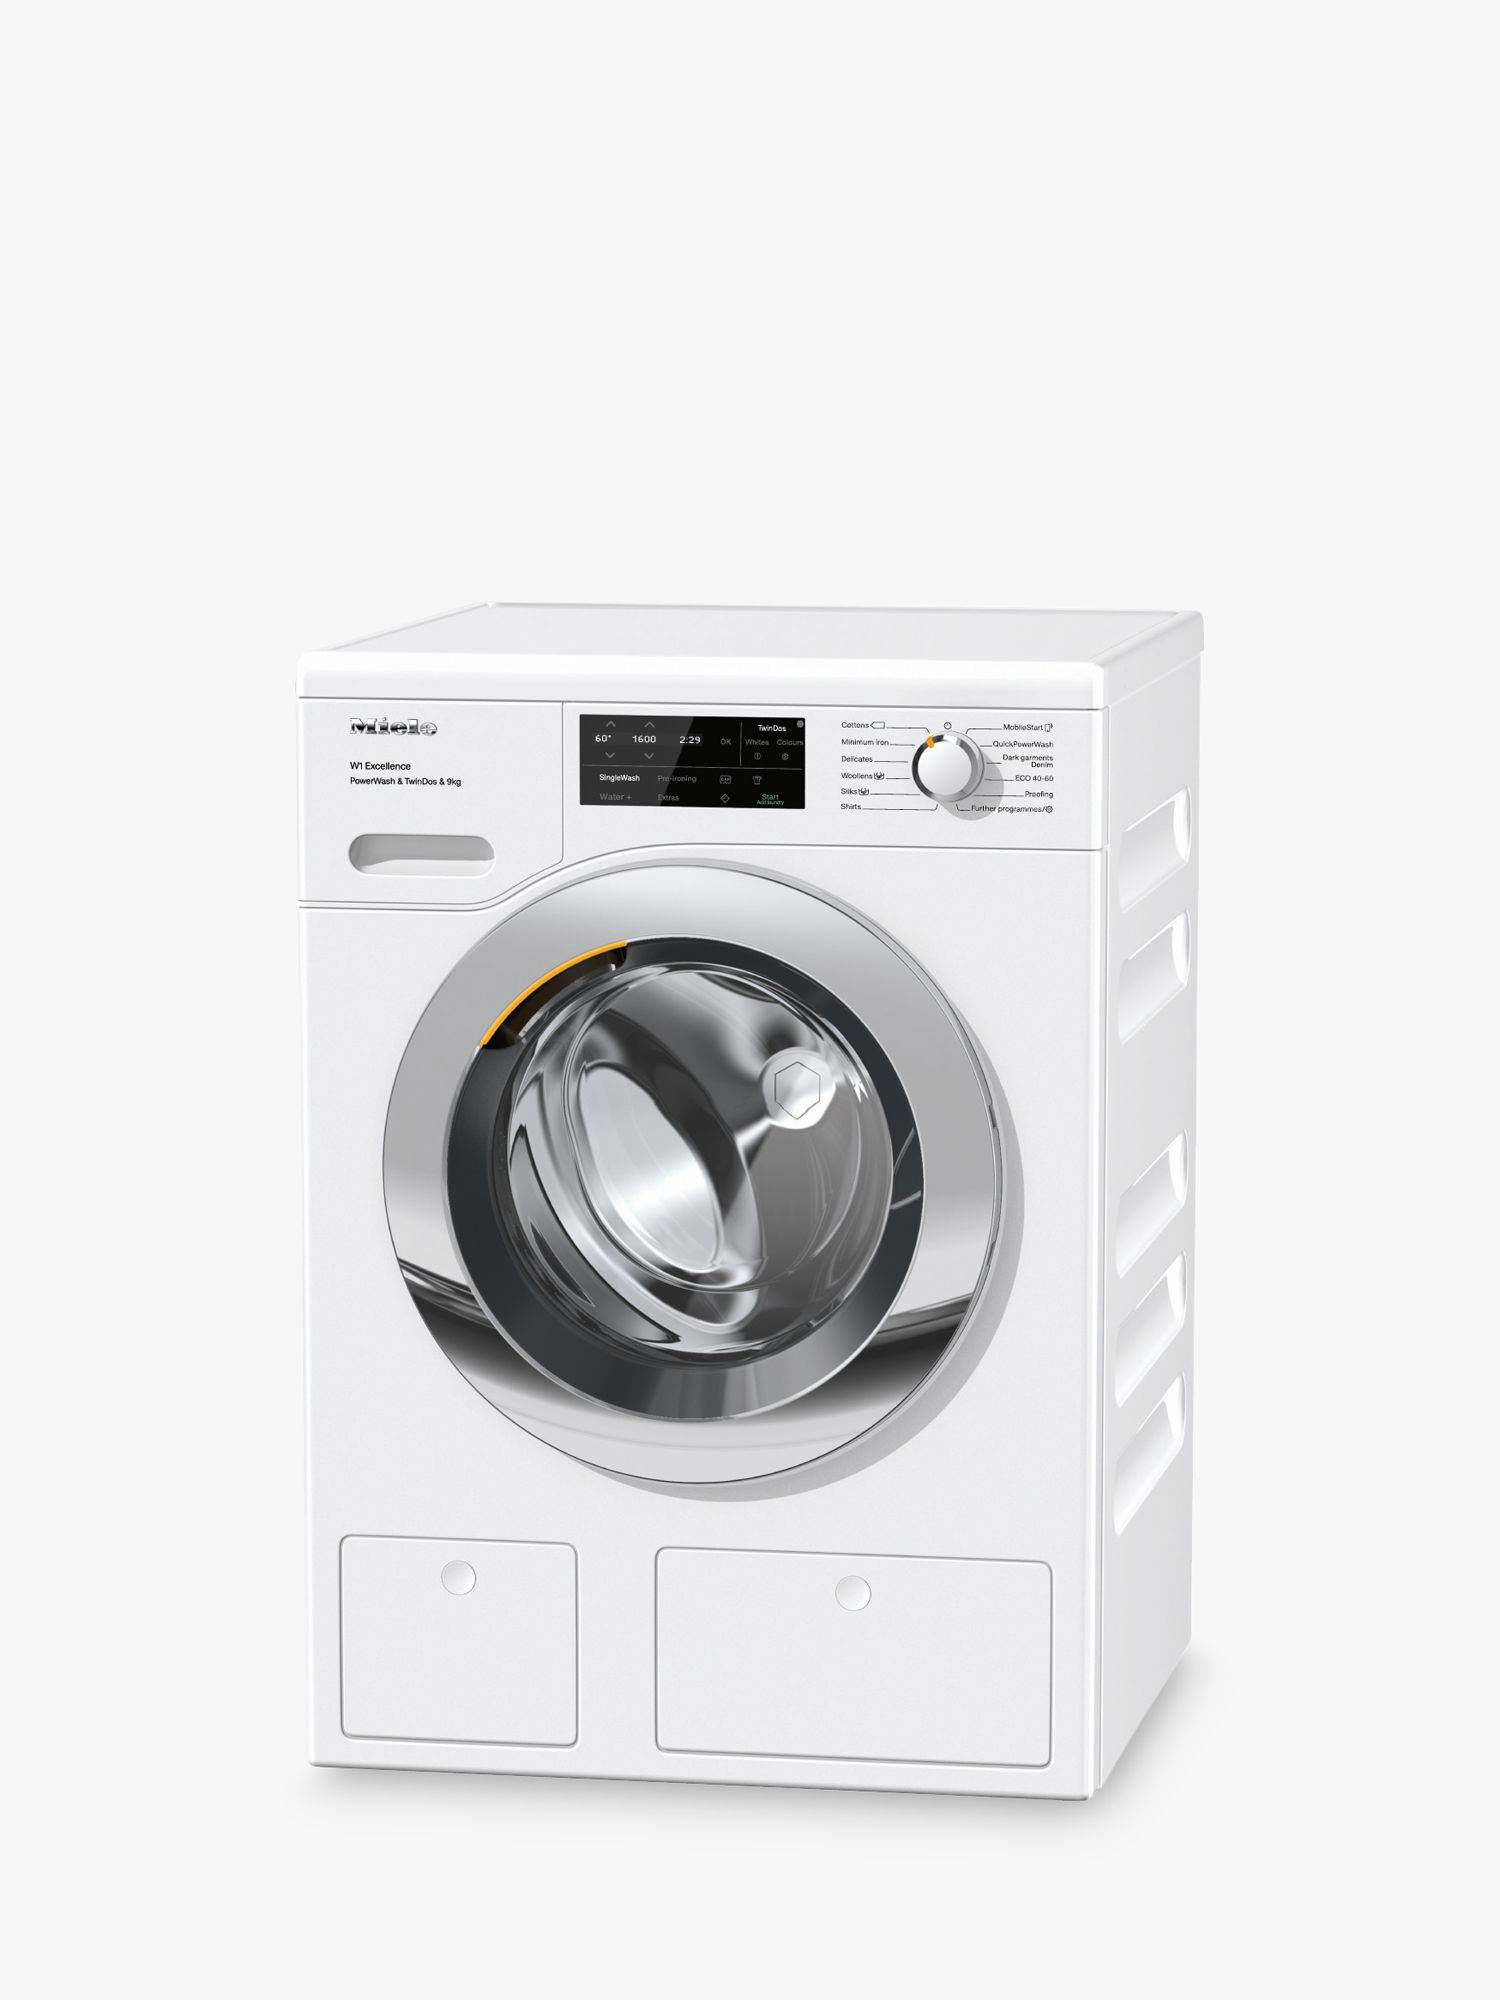 Miele Miele WEI865 Freestanding Washing Machine, 9kg Load, 1600rpm, A+++ Energy Rating, White